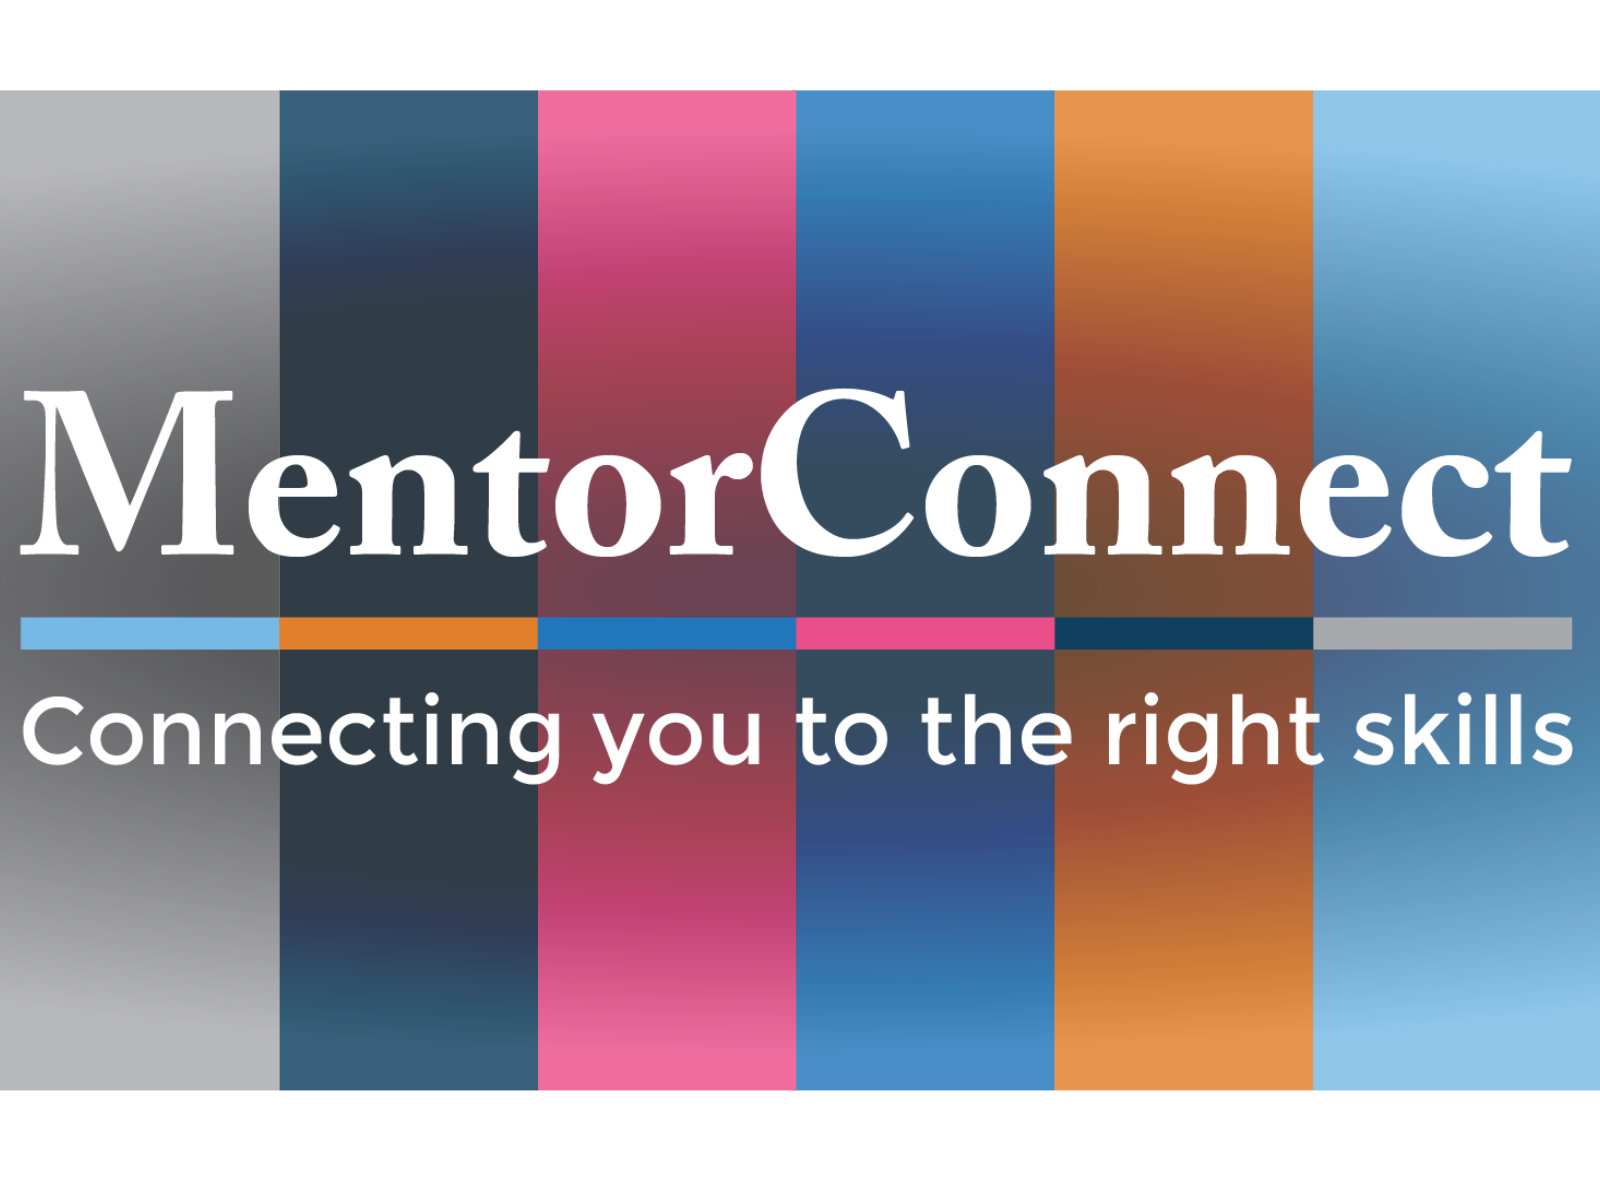 MentorConnect, Connecting you to the right skills